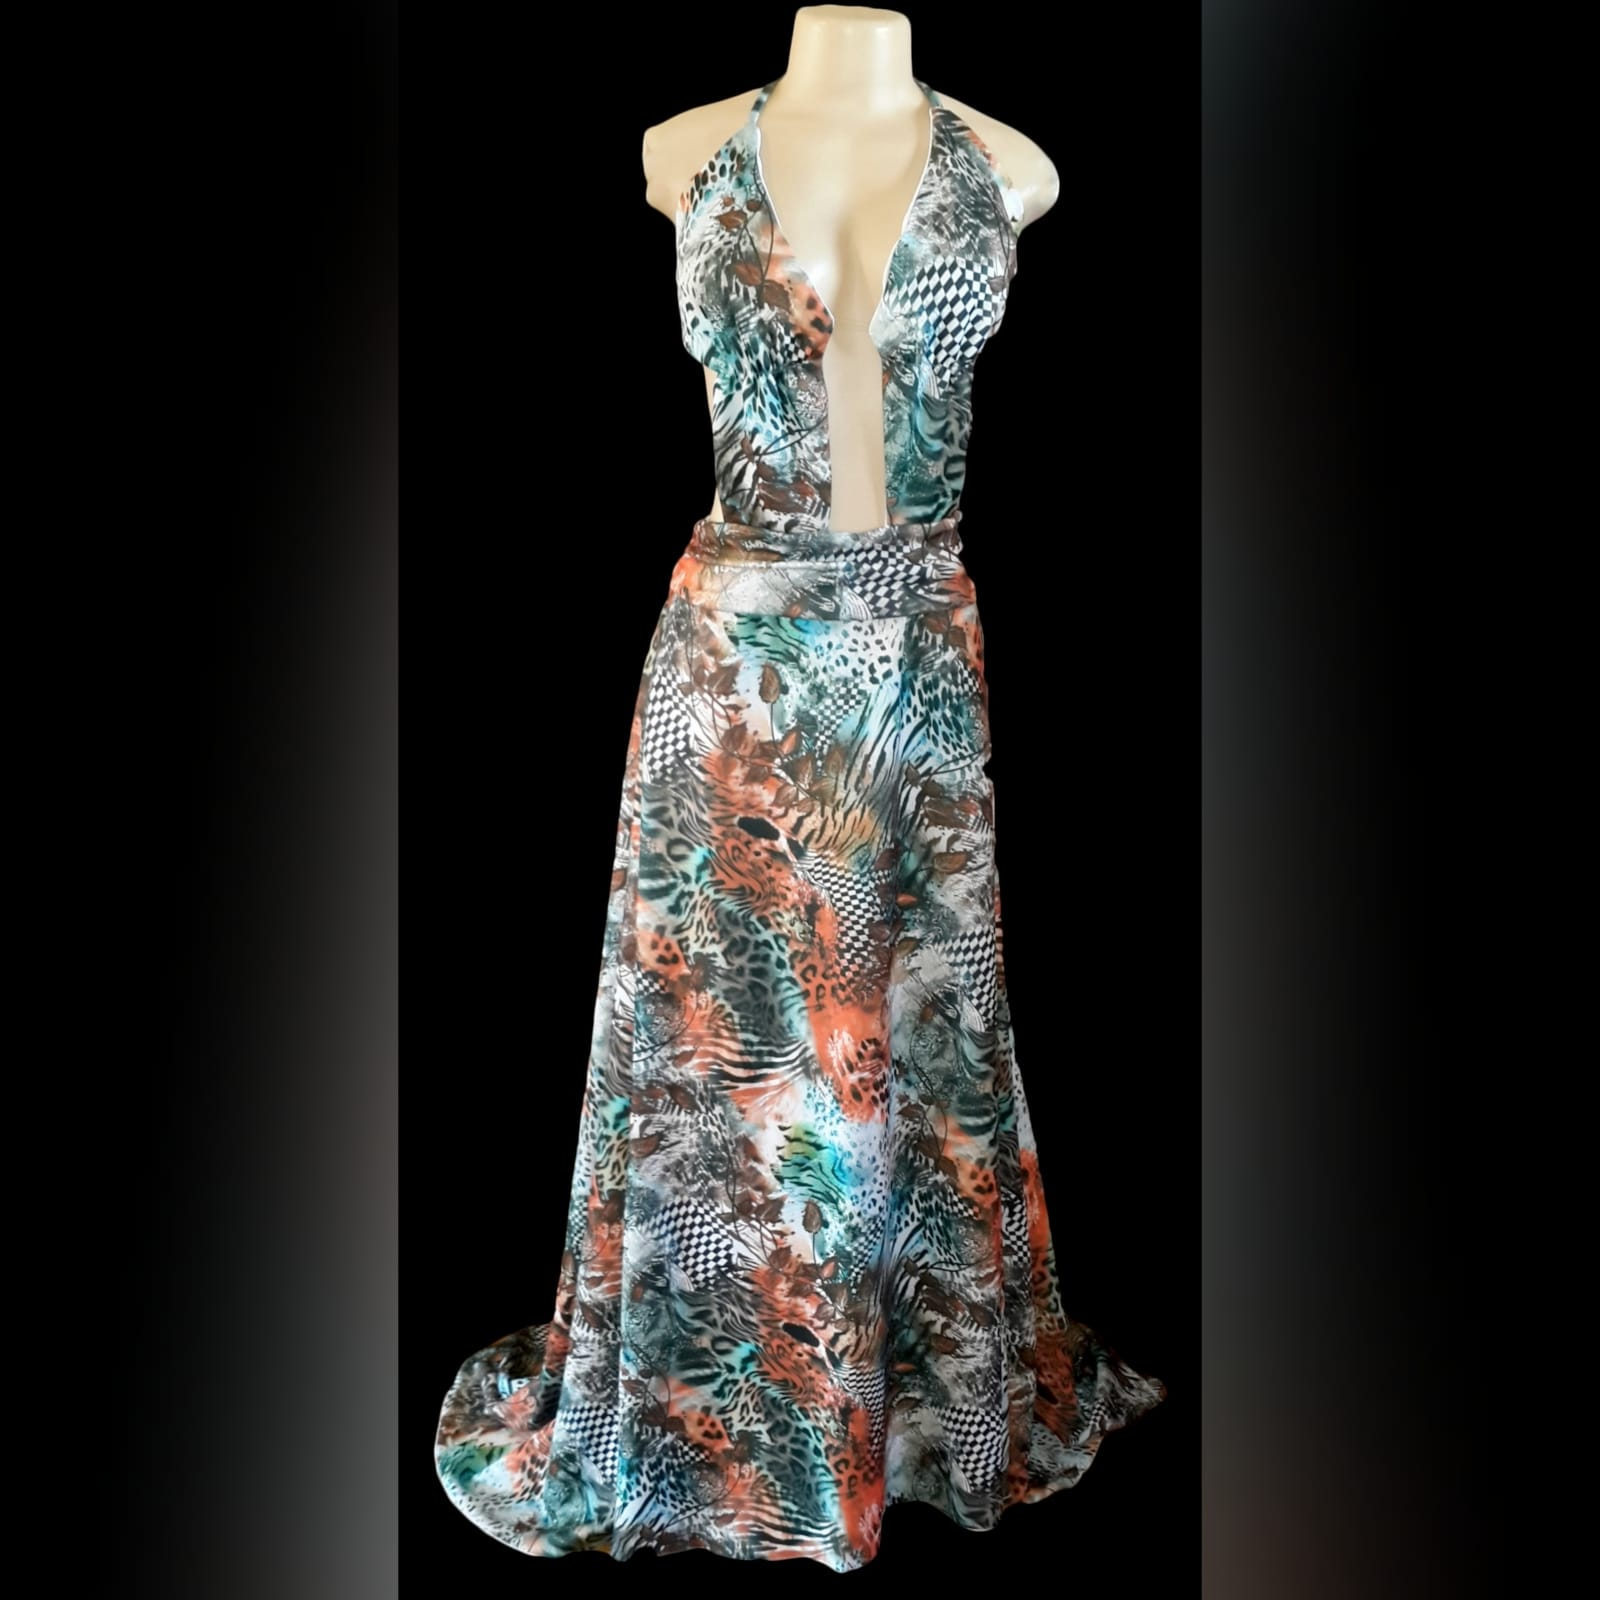 Printed long plunging neckline matric dance dress 8 printed long plunging neckline matric dance dress with a naked back and a train